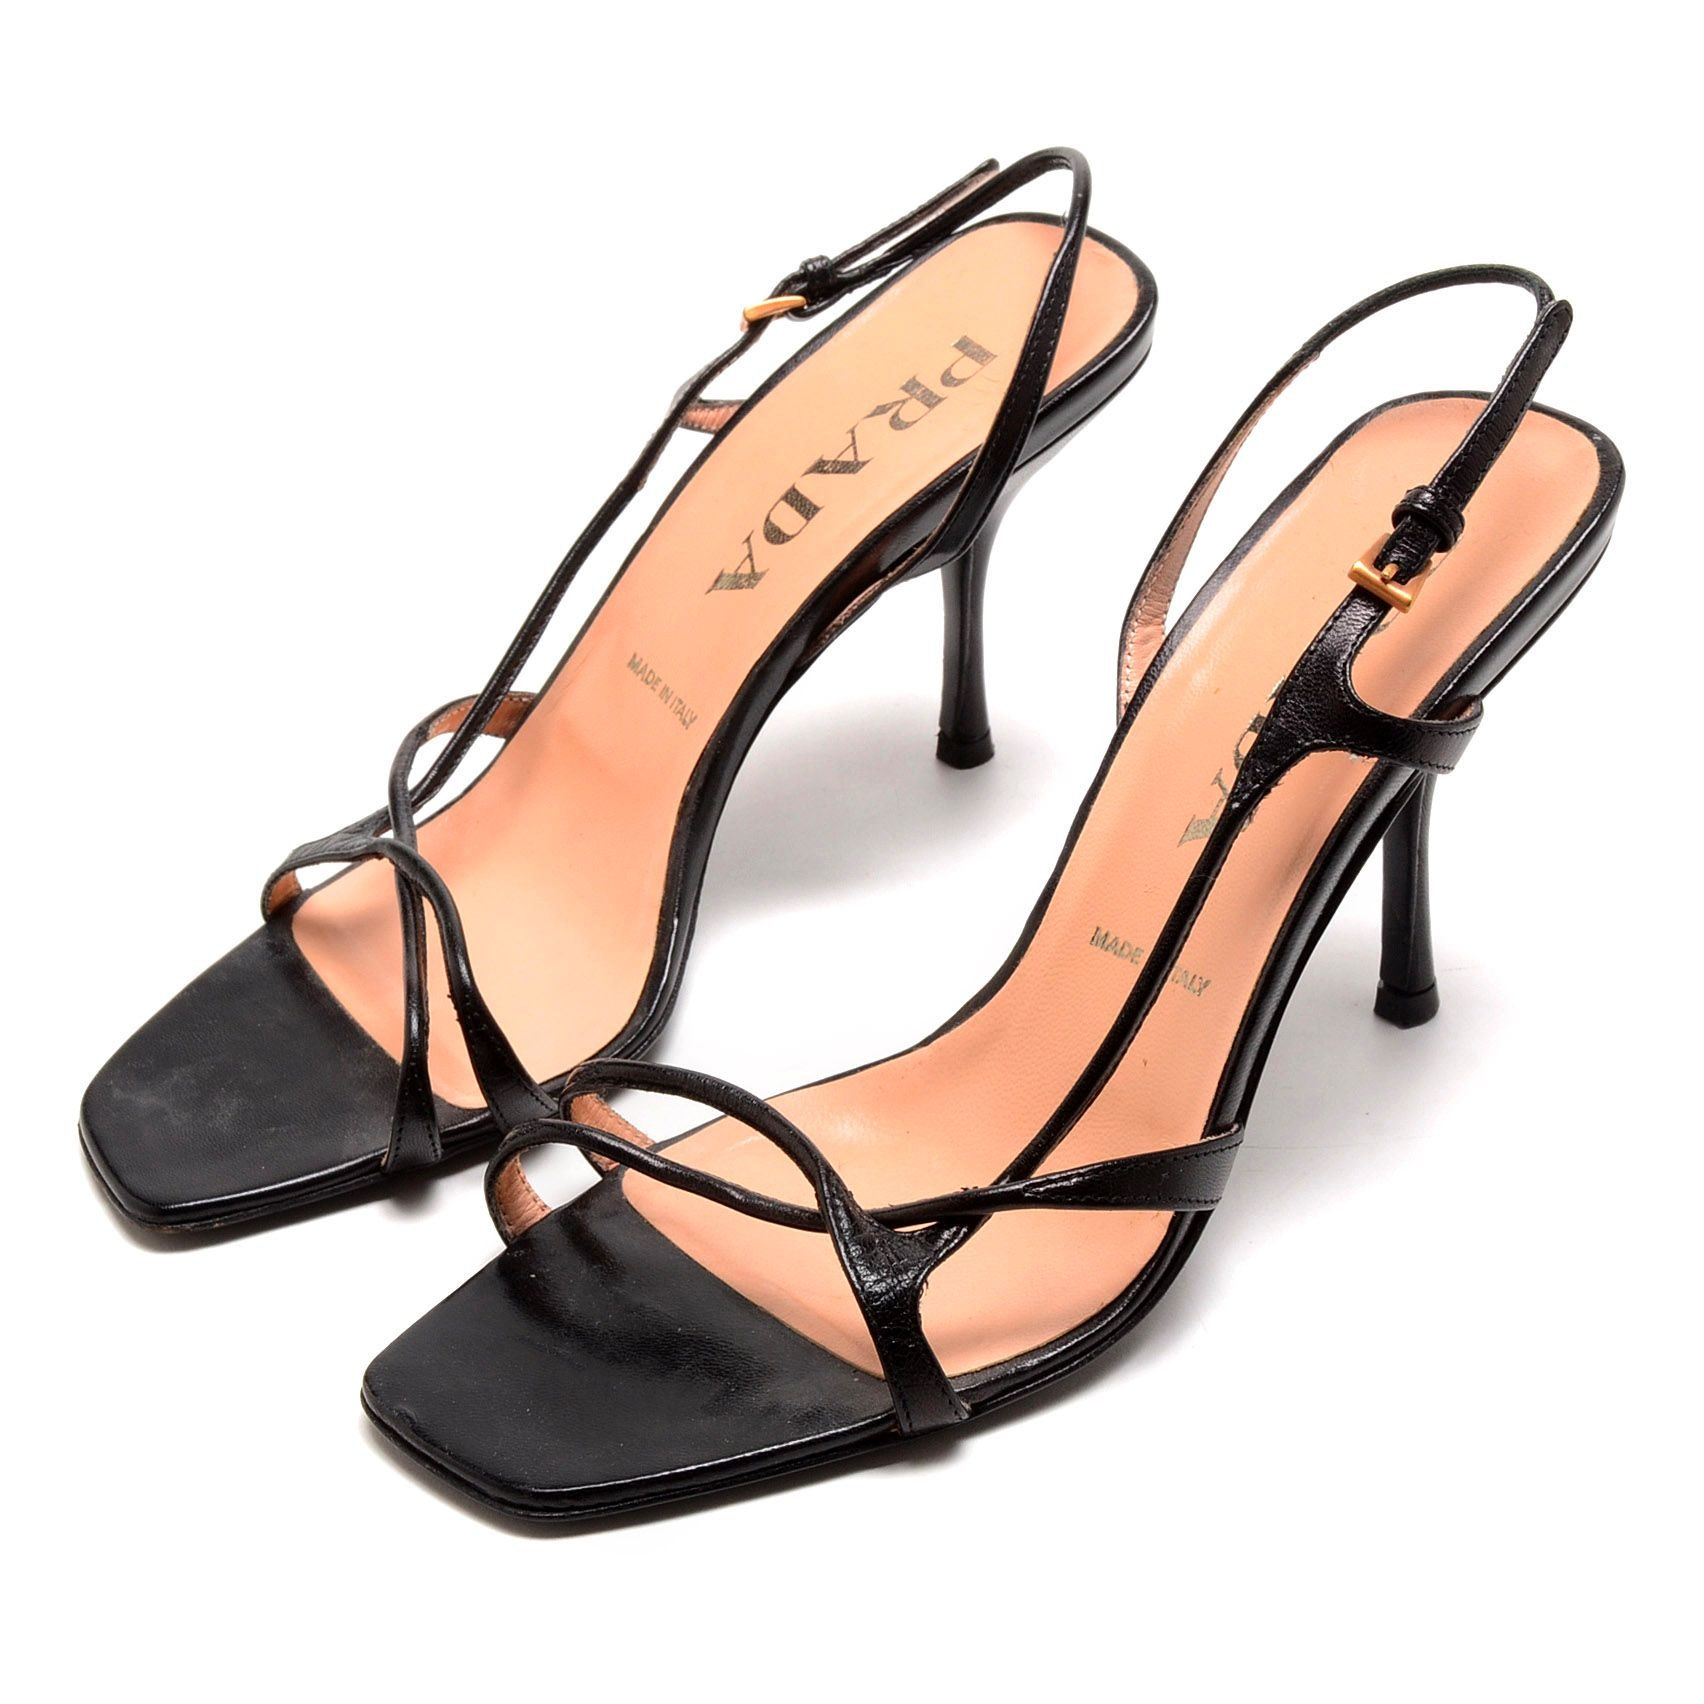 Prada Black Leather Strappy Slingback Dress Sandals